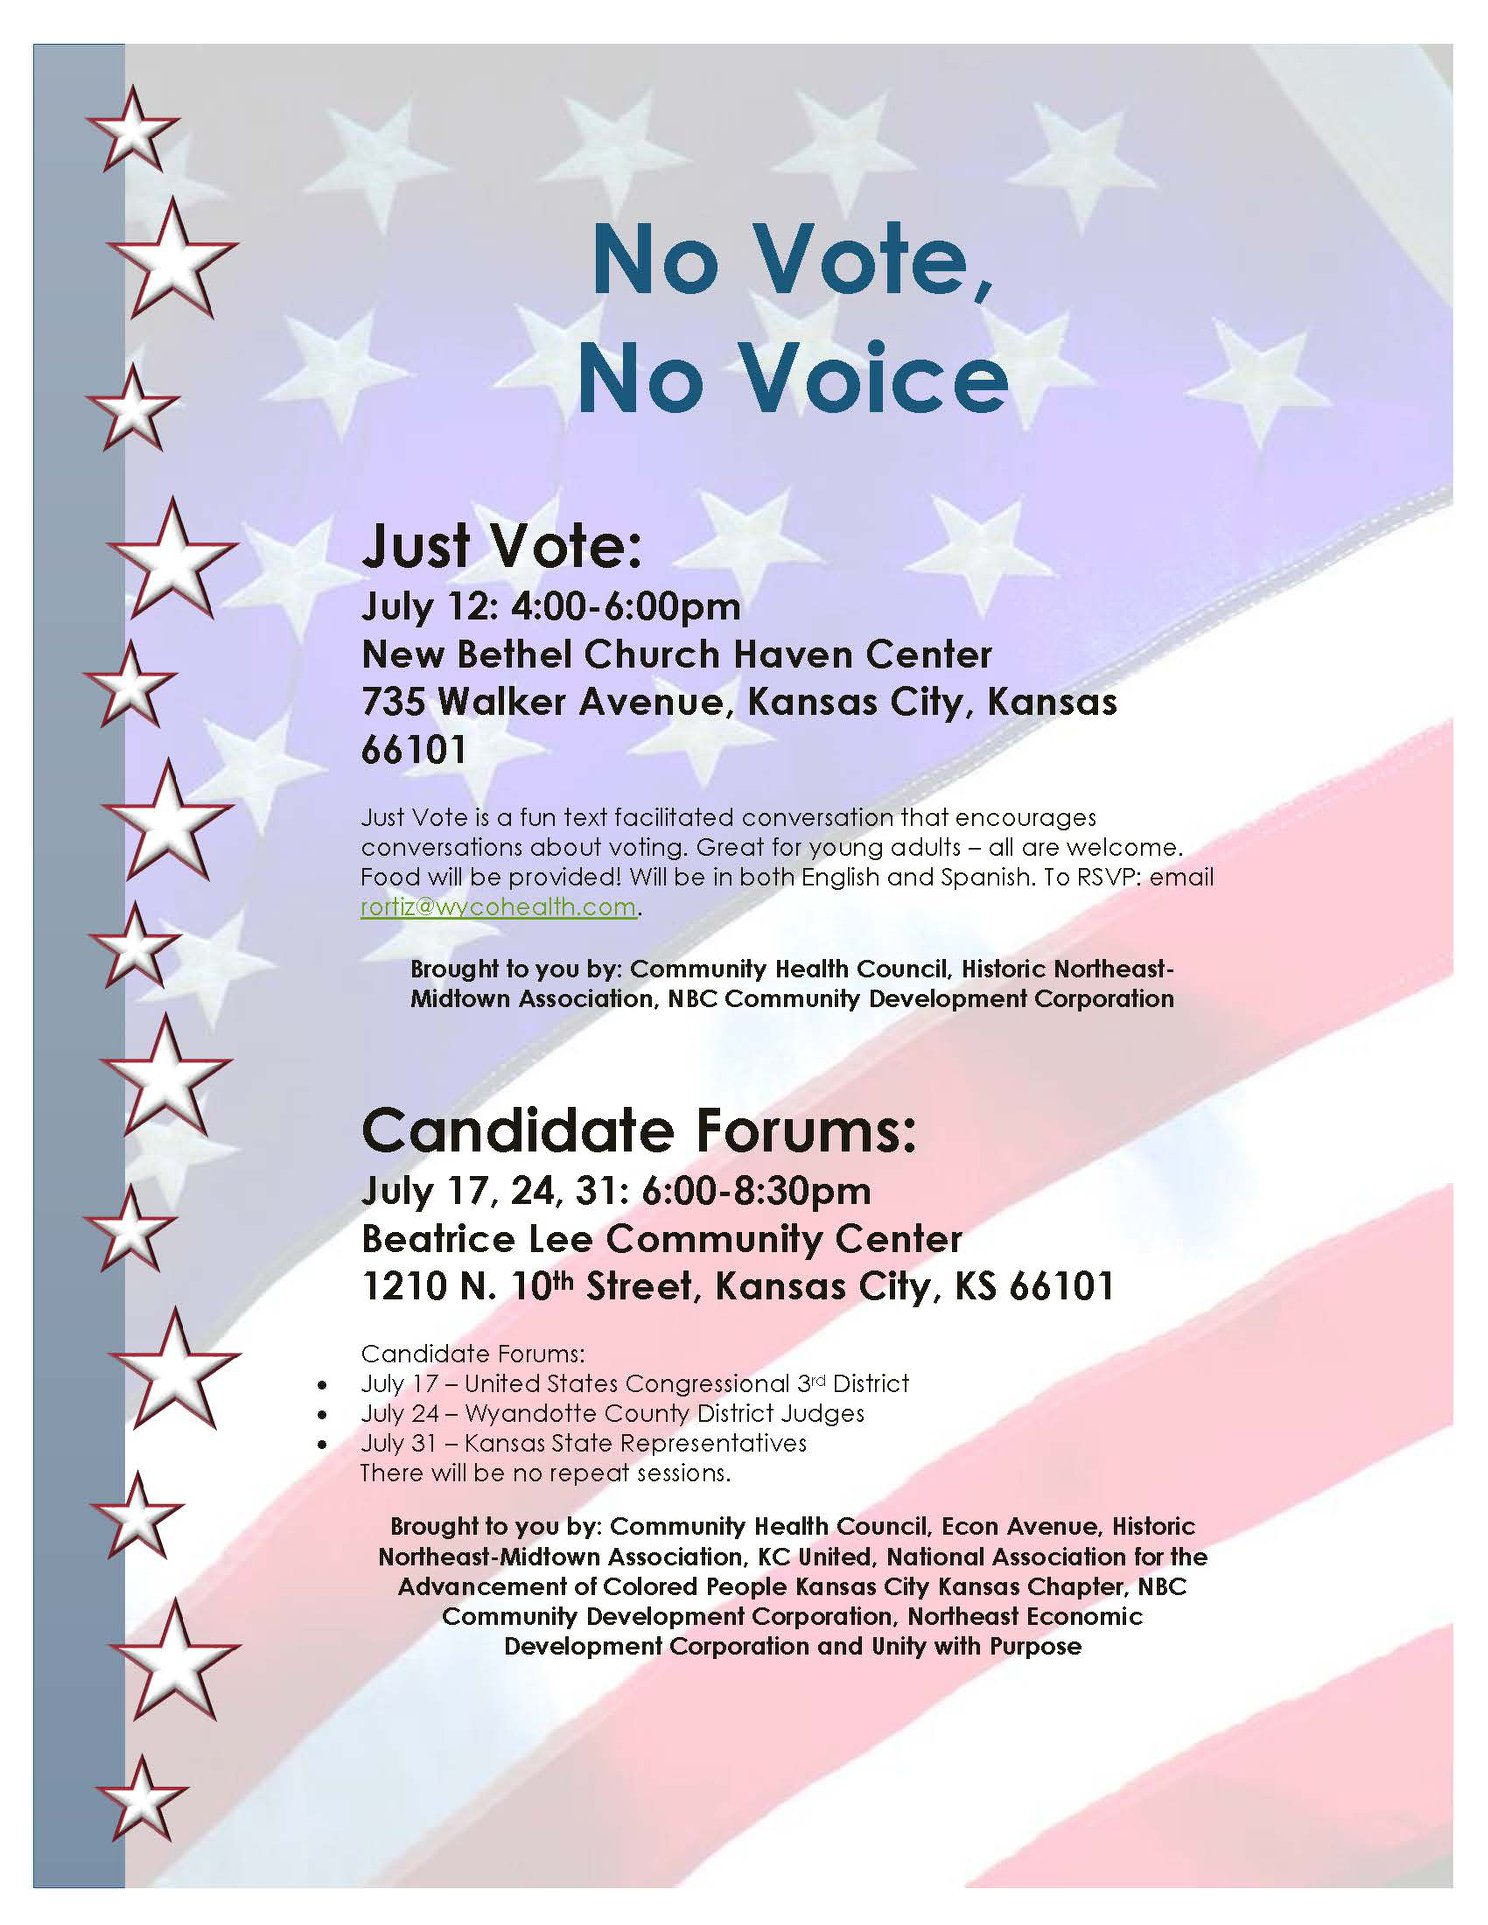 Candidate Forums - Kansas State Representatives — Healthy